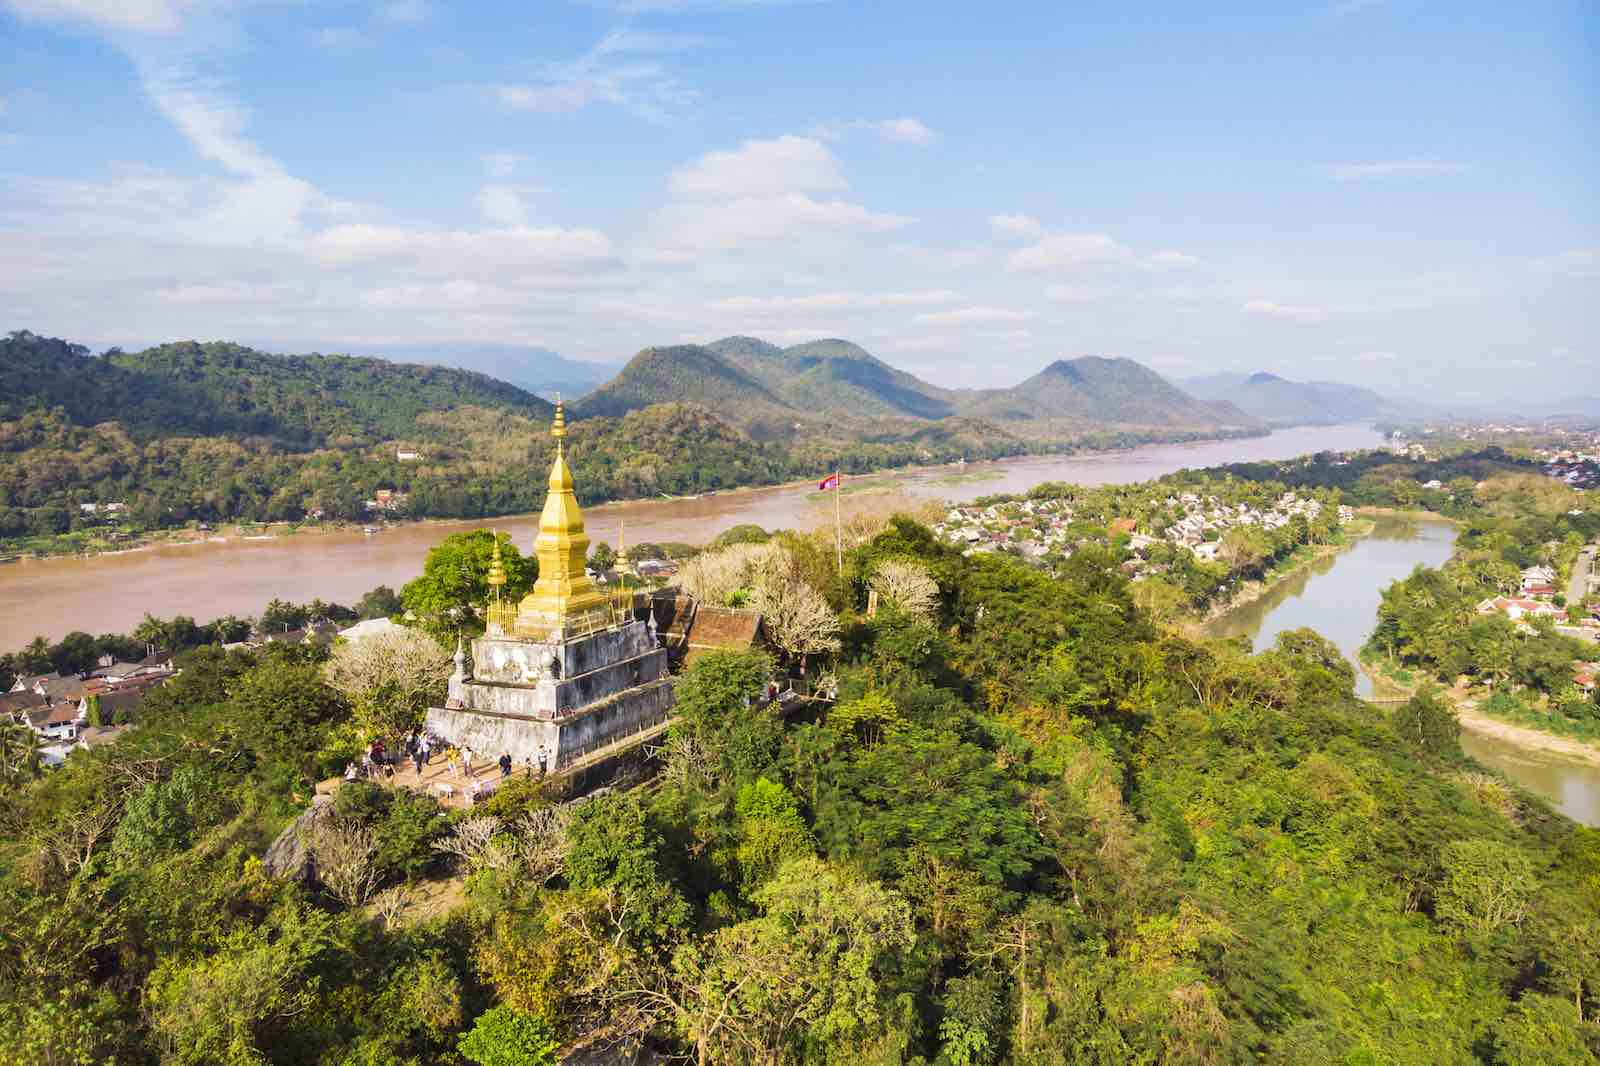 Luang Prabang and the Mekong River in Laos (Photo: Getty Images)